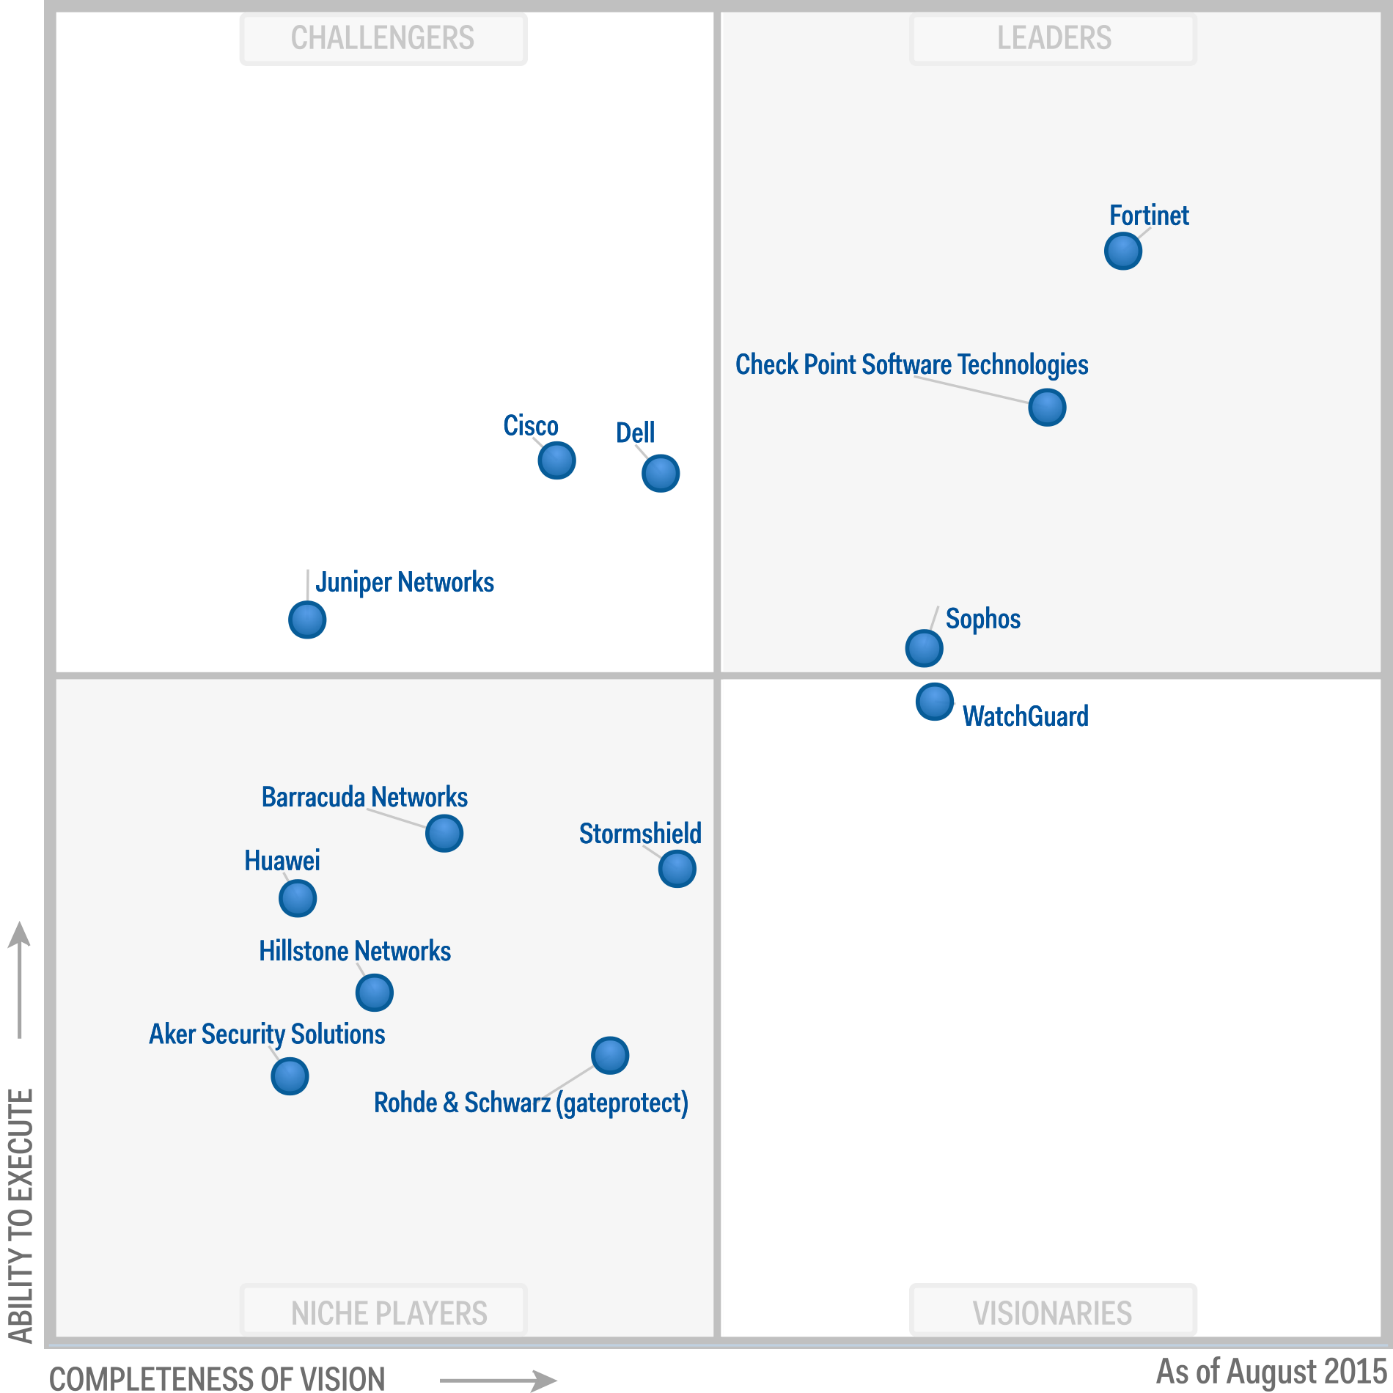 Magic Quadrant for Unified Threat Management 2015 (G00269677)